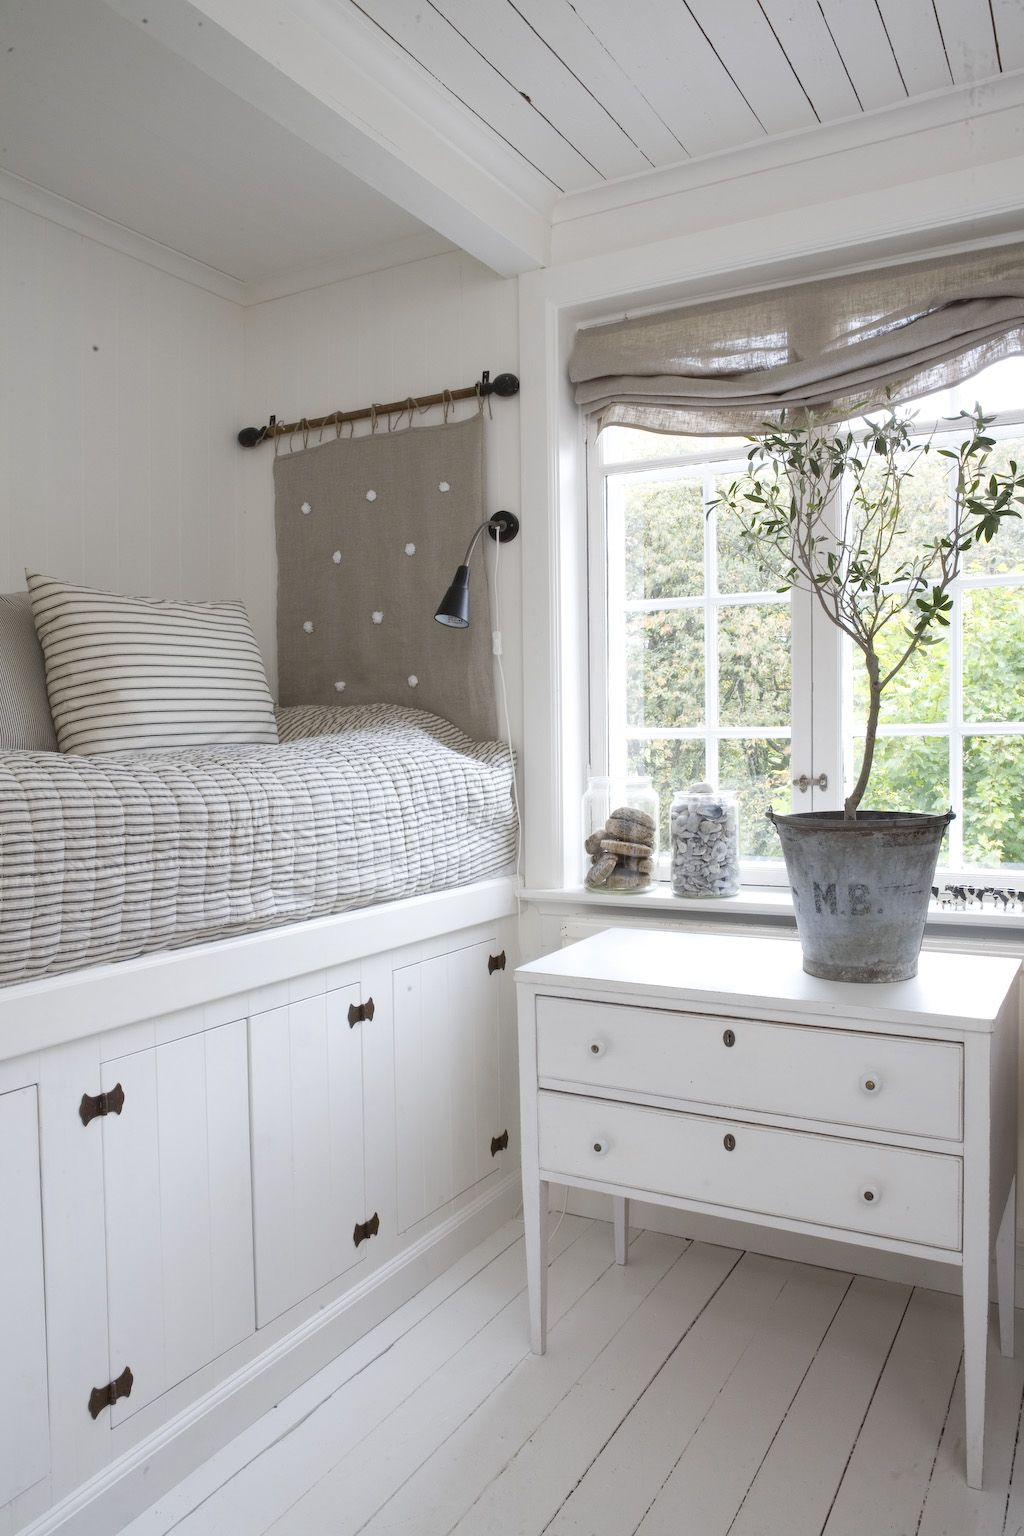 Build a bed with storage underneathtucked against a wall or bed